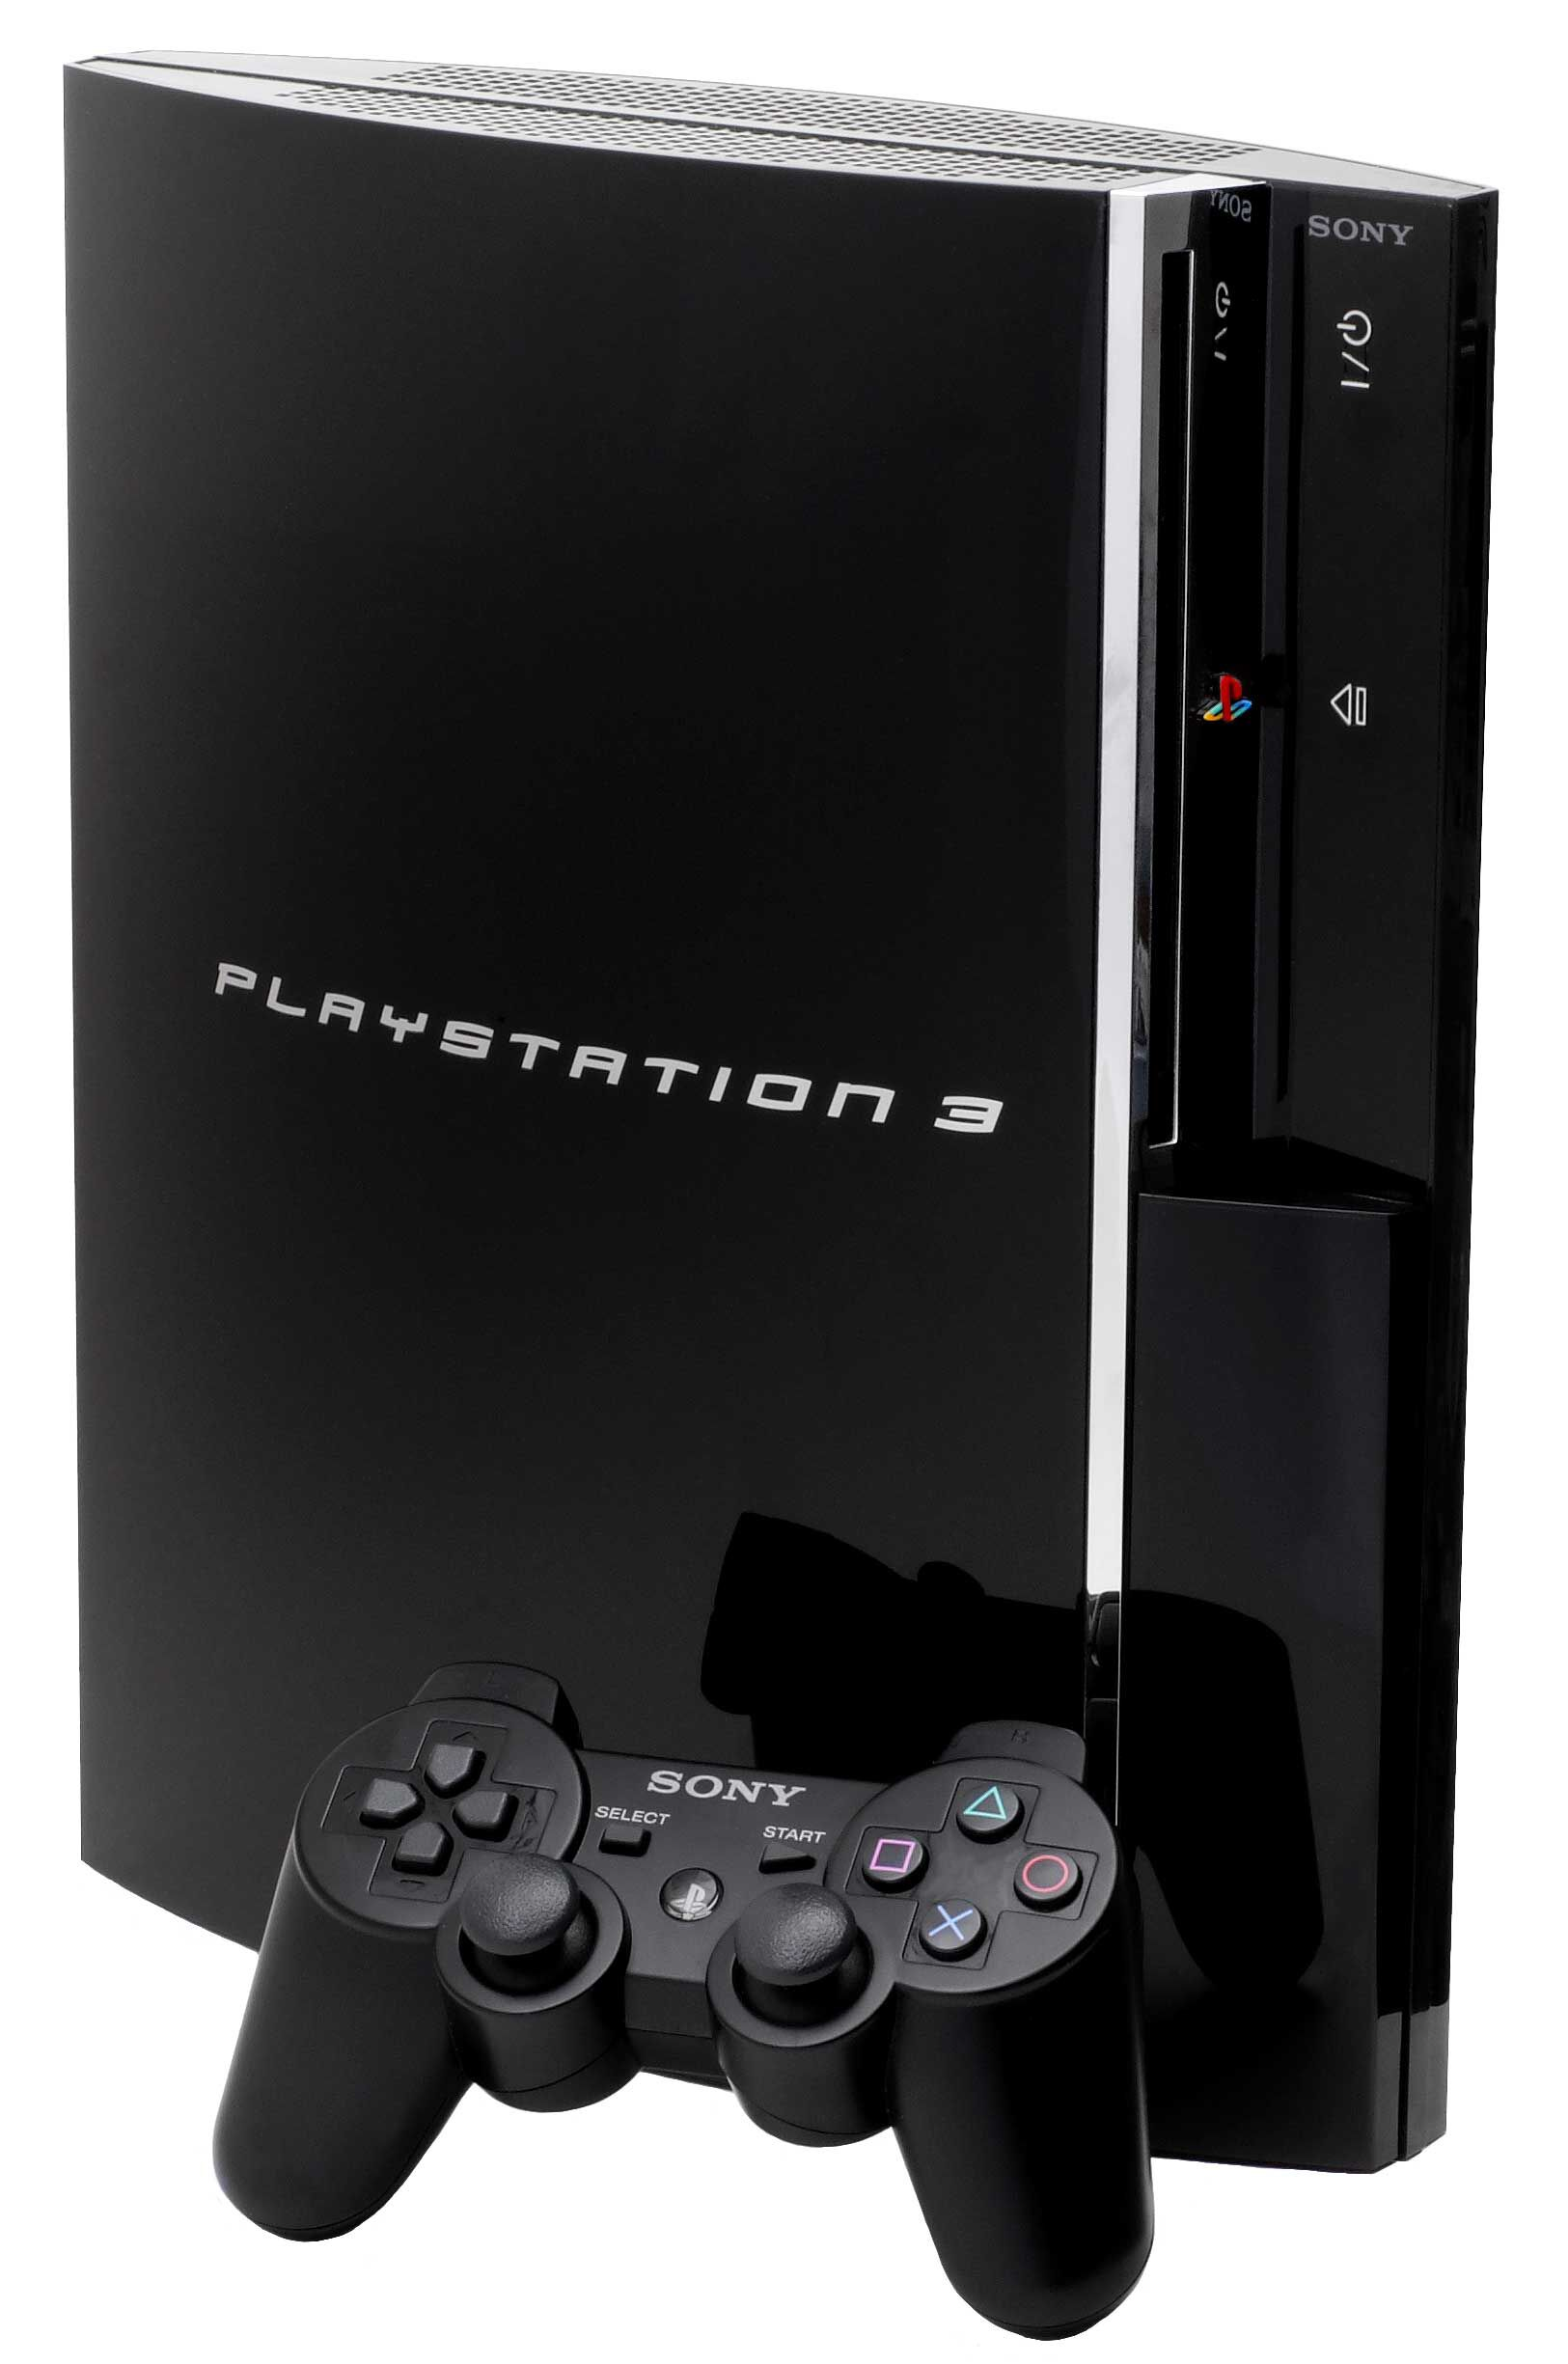 ps3 fat 40 gb